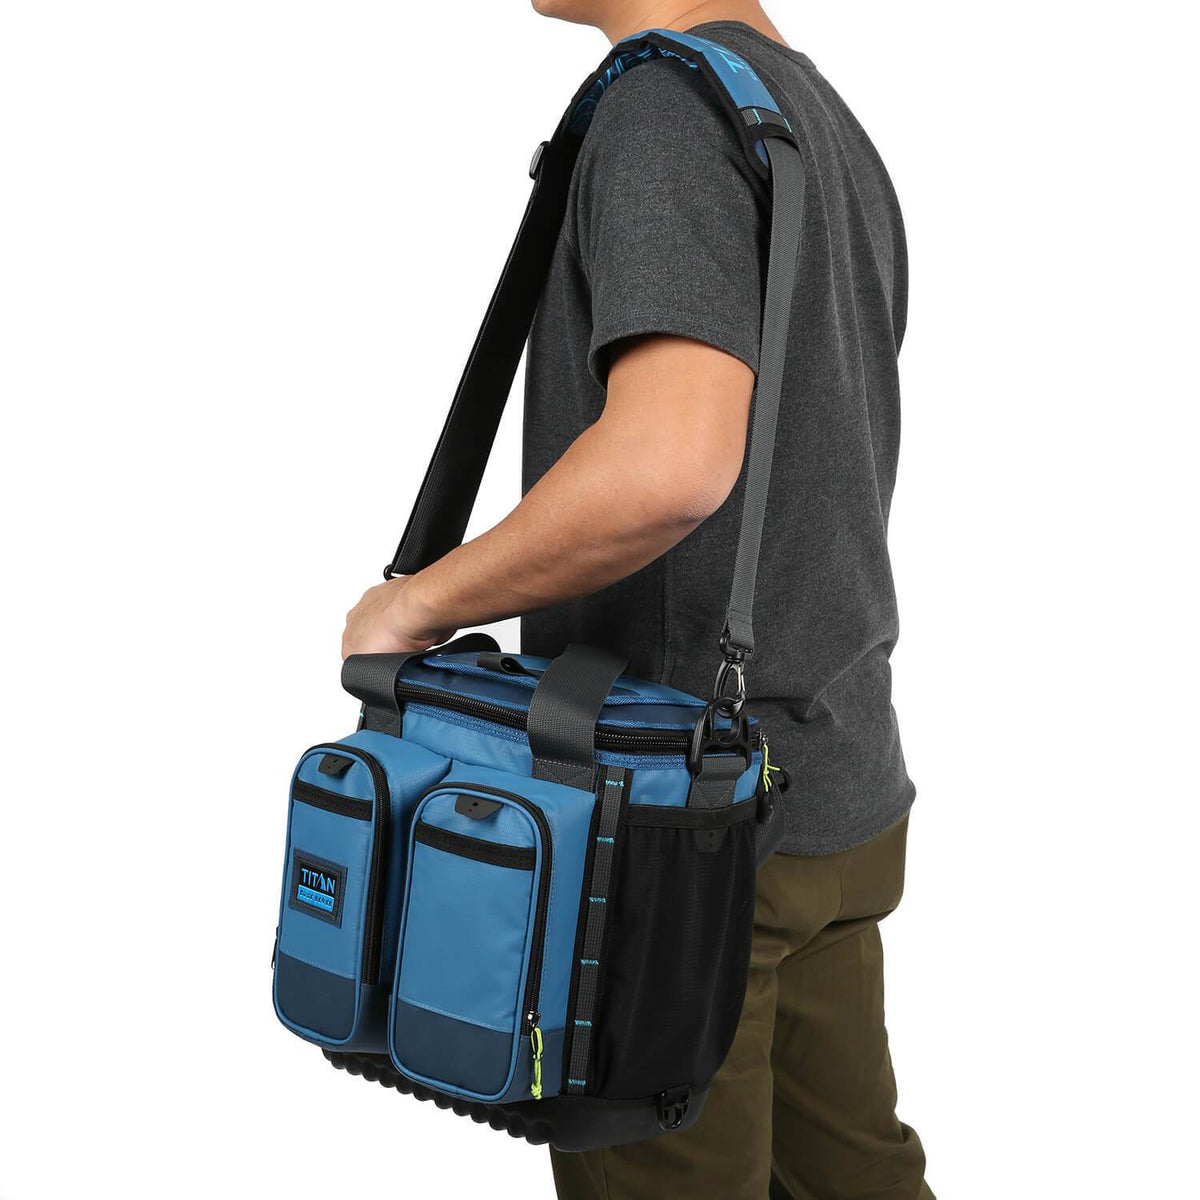 Titan Guide Series - 16 can backpack - model carry